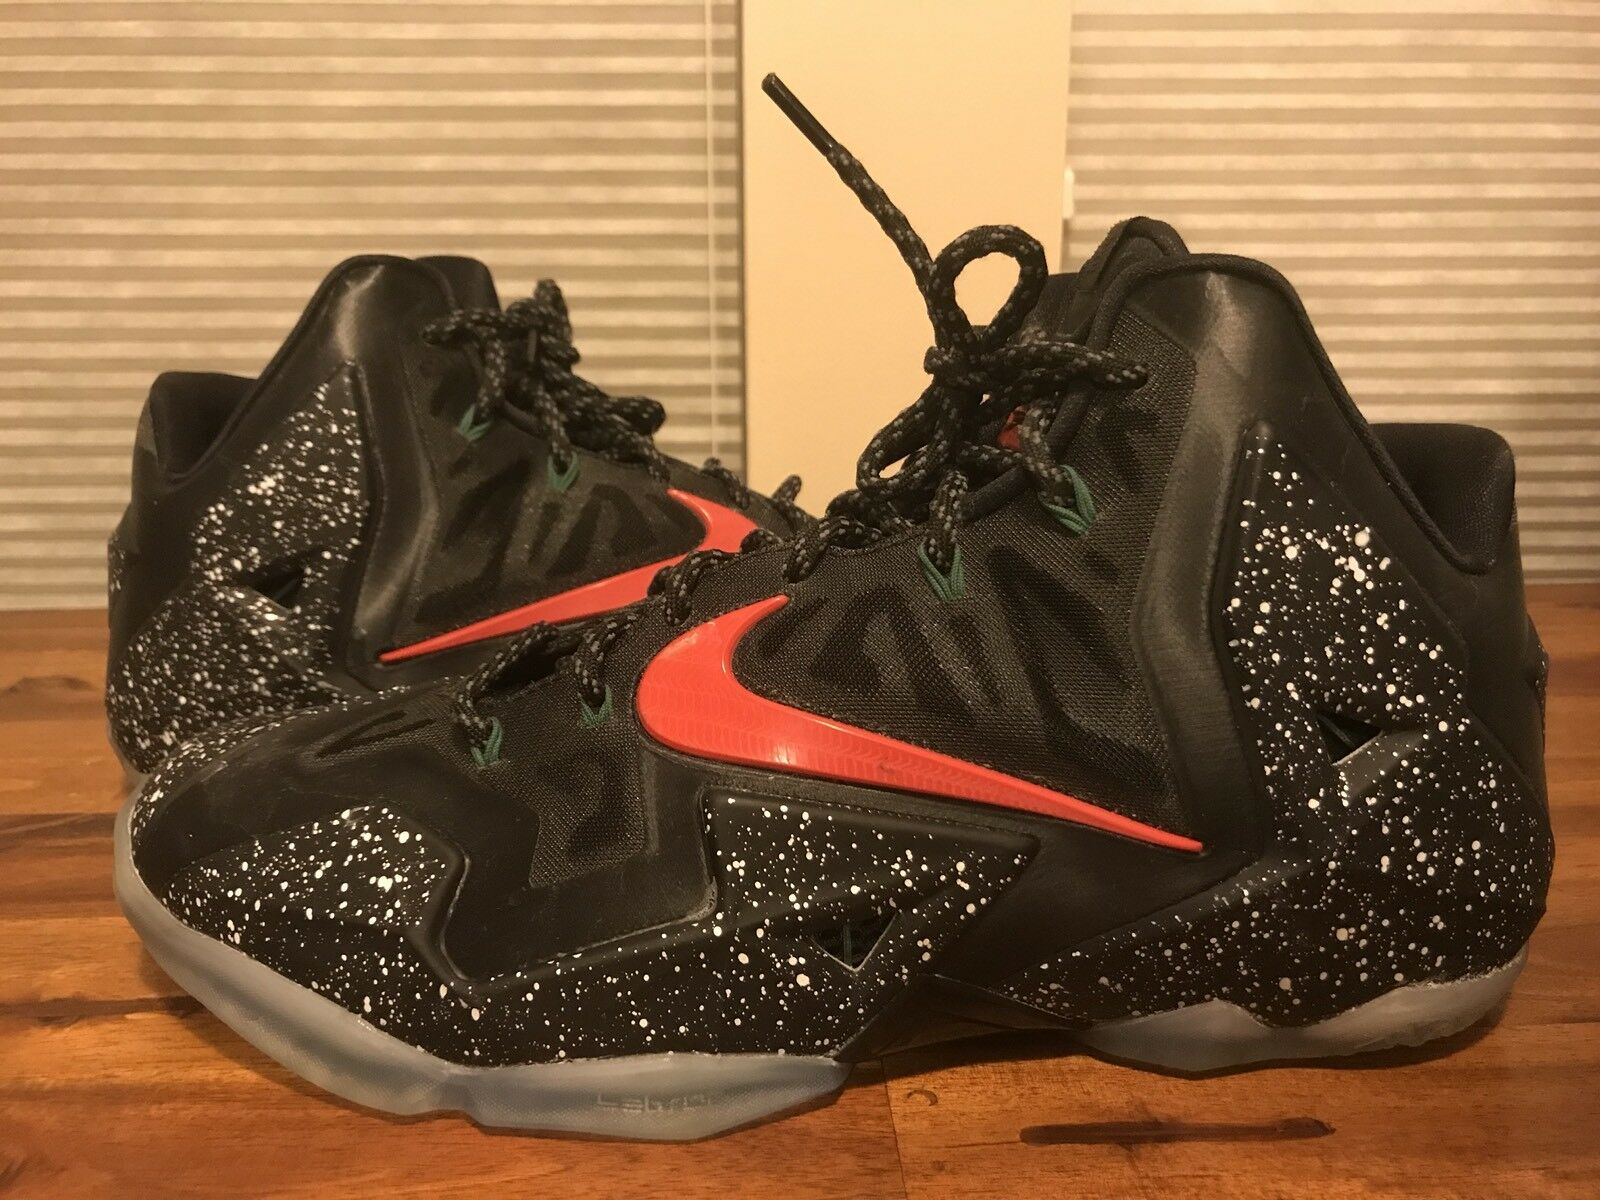 Lebron 11 NikeID Custom Shoes Sz 12 New shoes for men and women, limited time discount